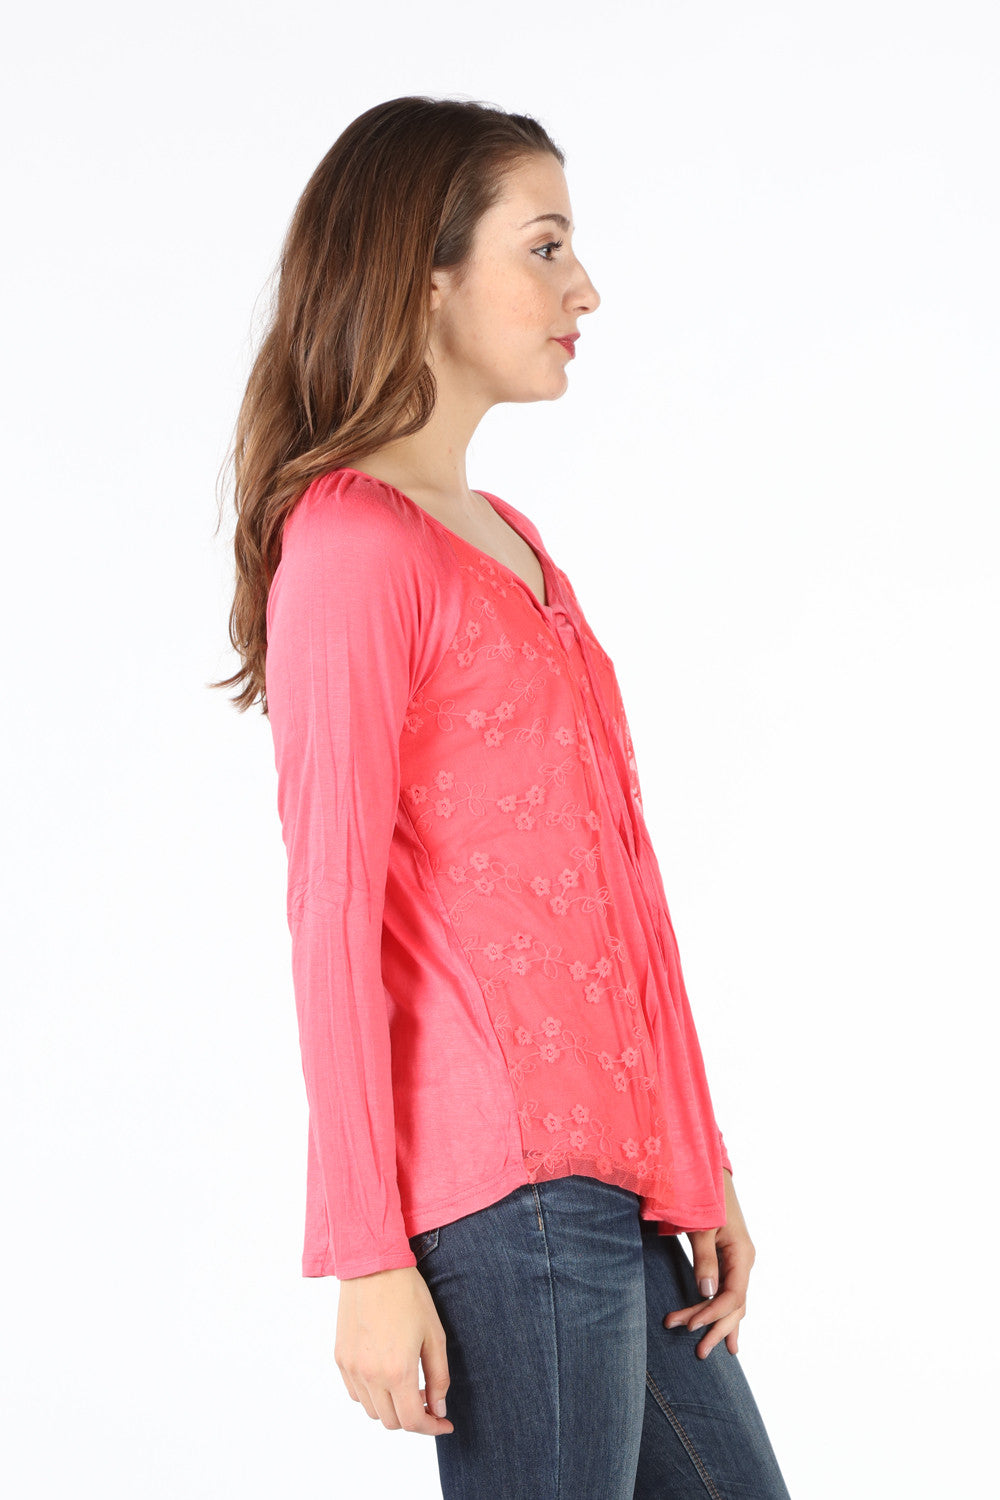 SB110A Dark Coral Lace Layered Blouse